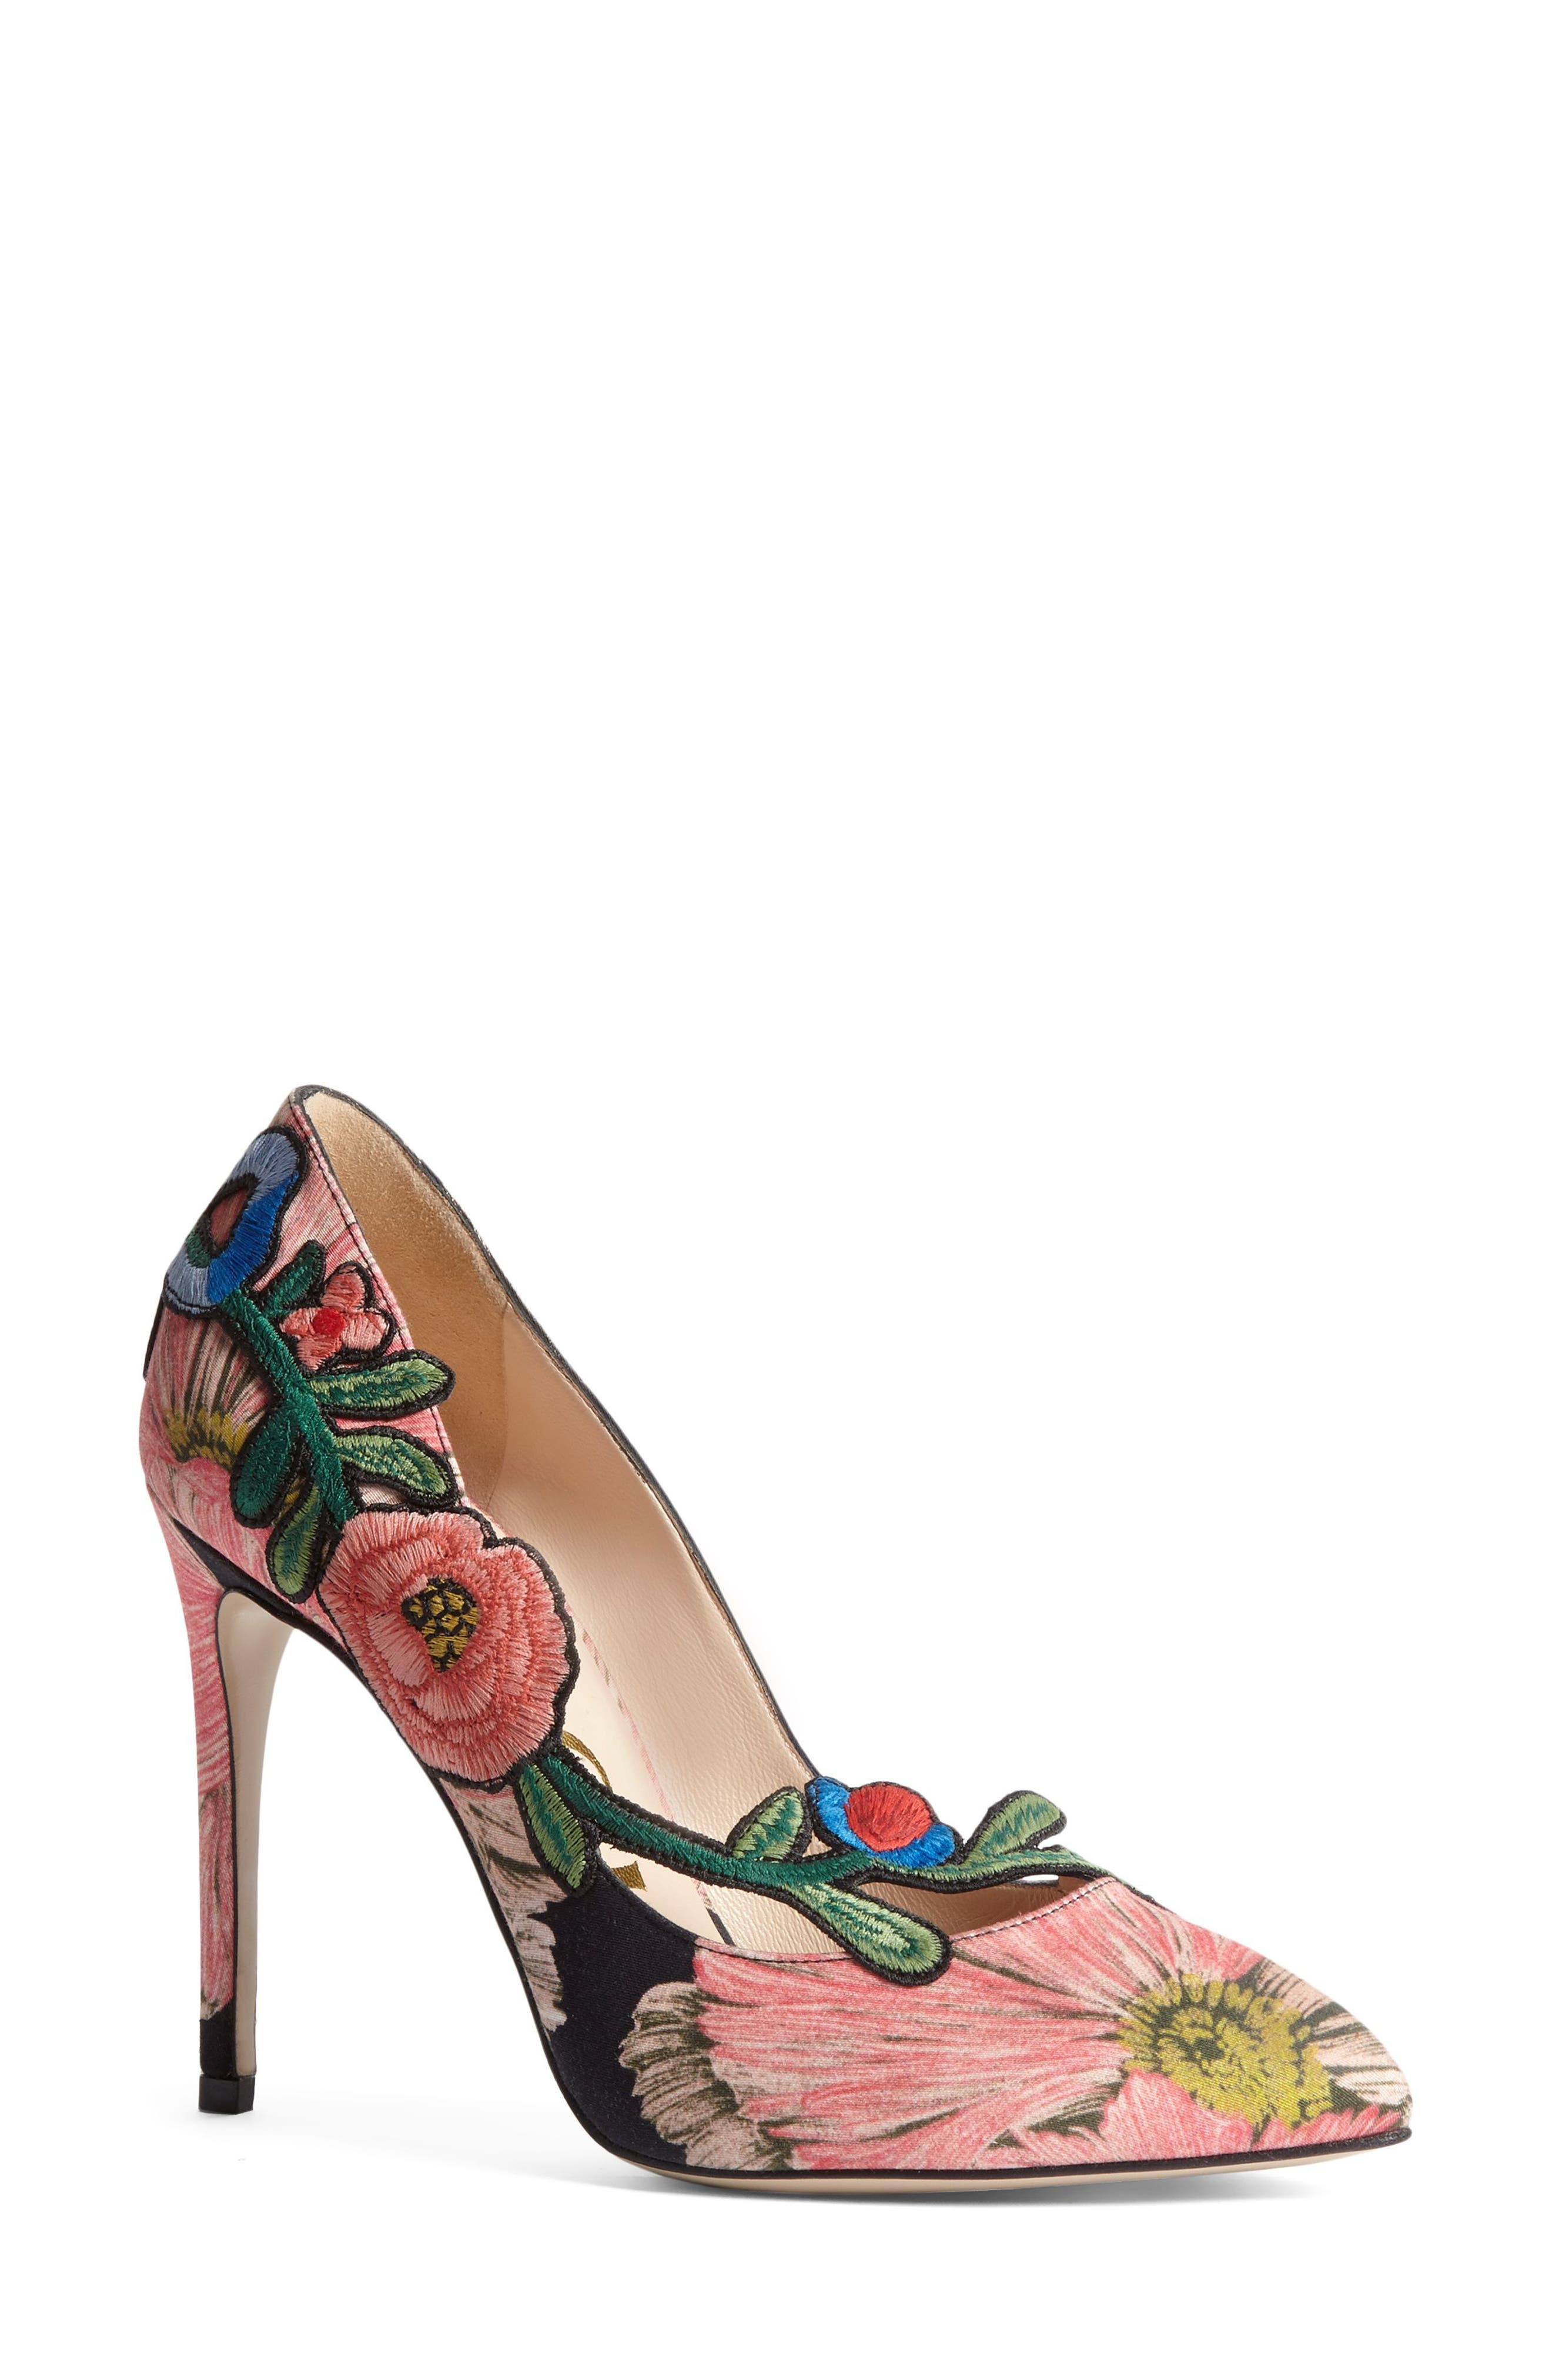 Gucci Ophelia Floral Pump (Women)